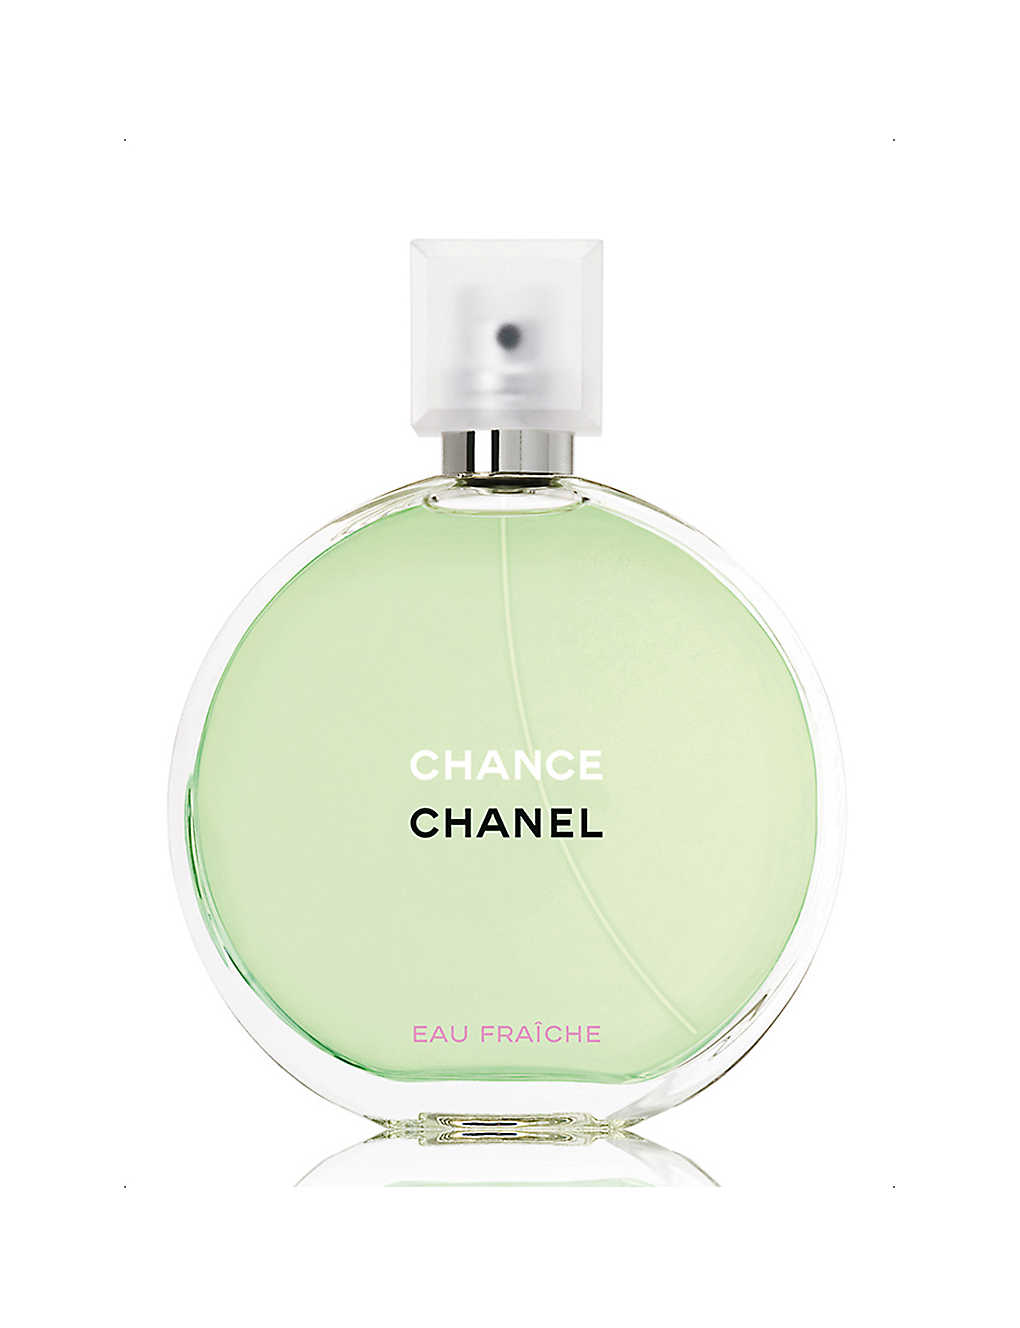 652abf09a CHANEL - CHANCE EAU FRAîCHE Eau de Toilette Spray 100ml | Selfridges.com